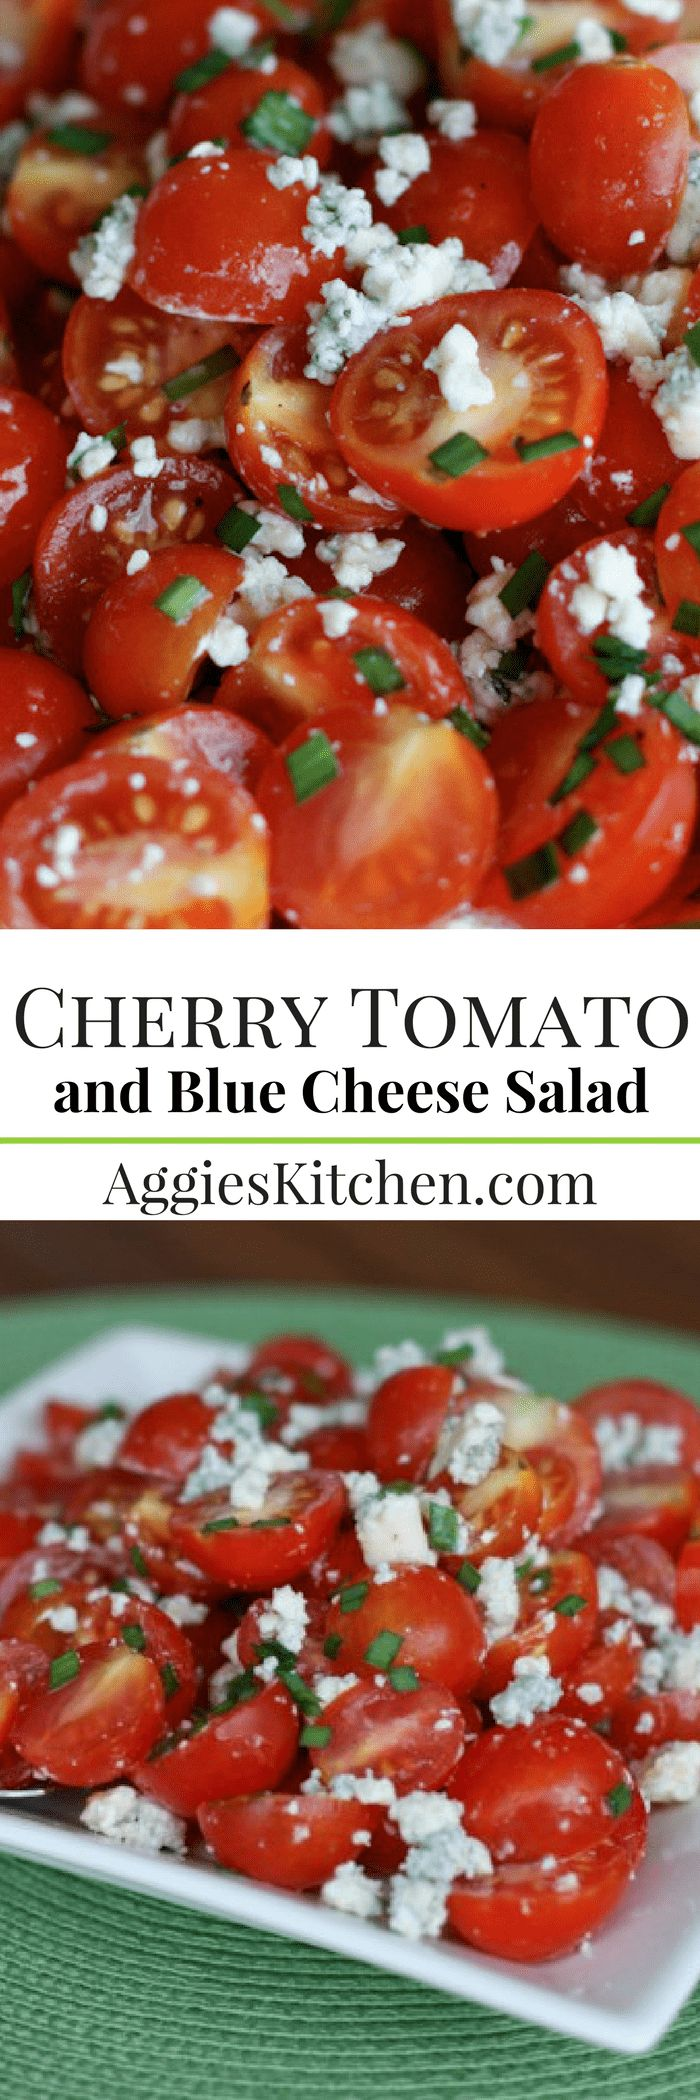 A simple summer salad full of fresh garden cherry tomatoes and savory blue cheese. This Cherry Tomato and Blue Cheese Salad is excellent for summertime picnics and barbecues! via @aggieskitchen